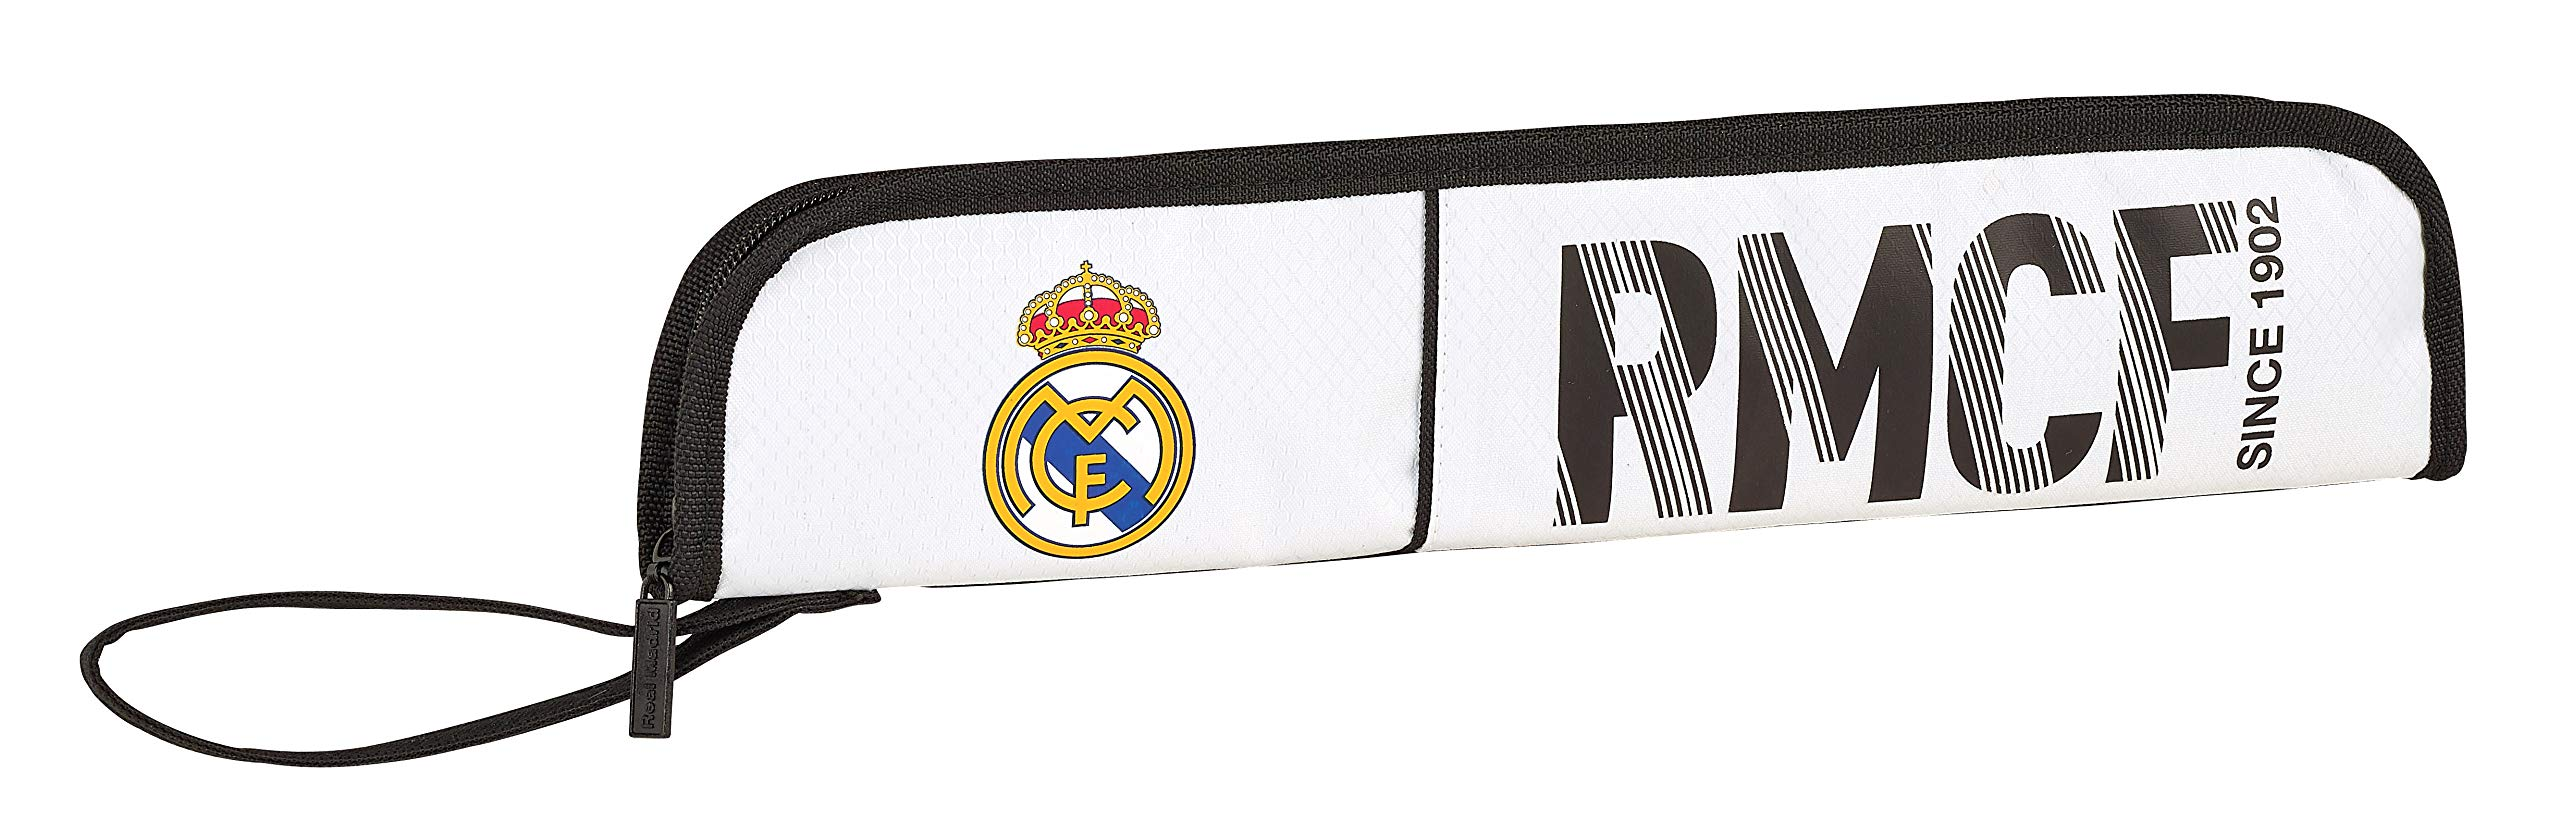 Real Madrid 811854284 2018 Portaflauta, 37 cm, Blanco